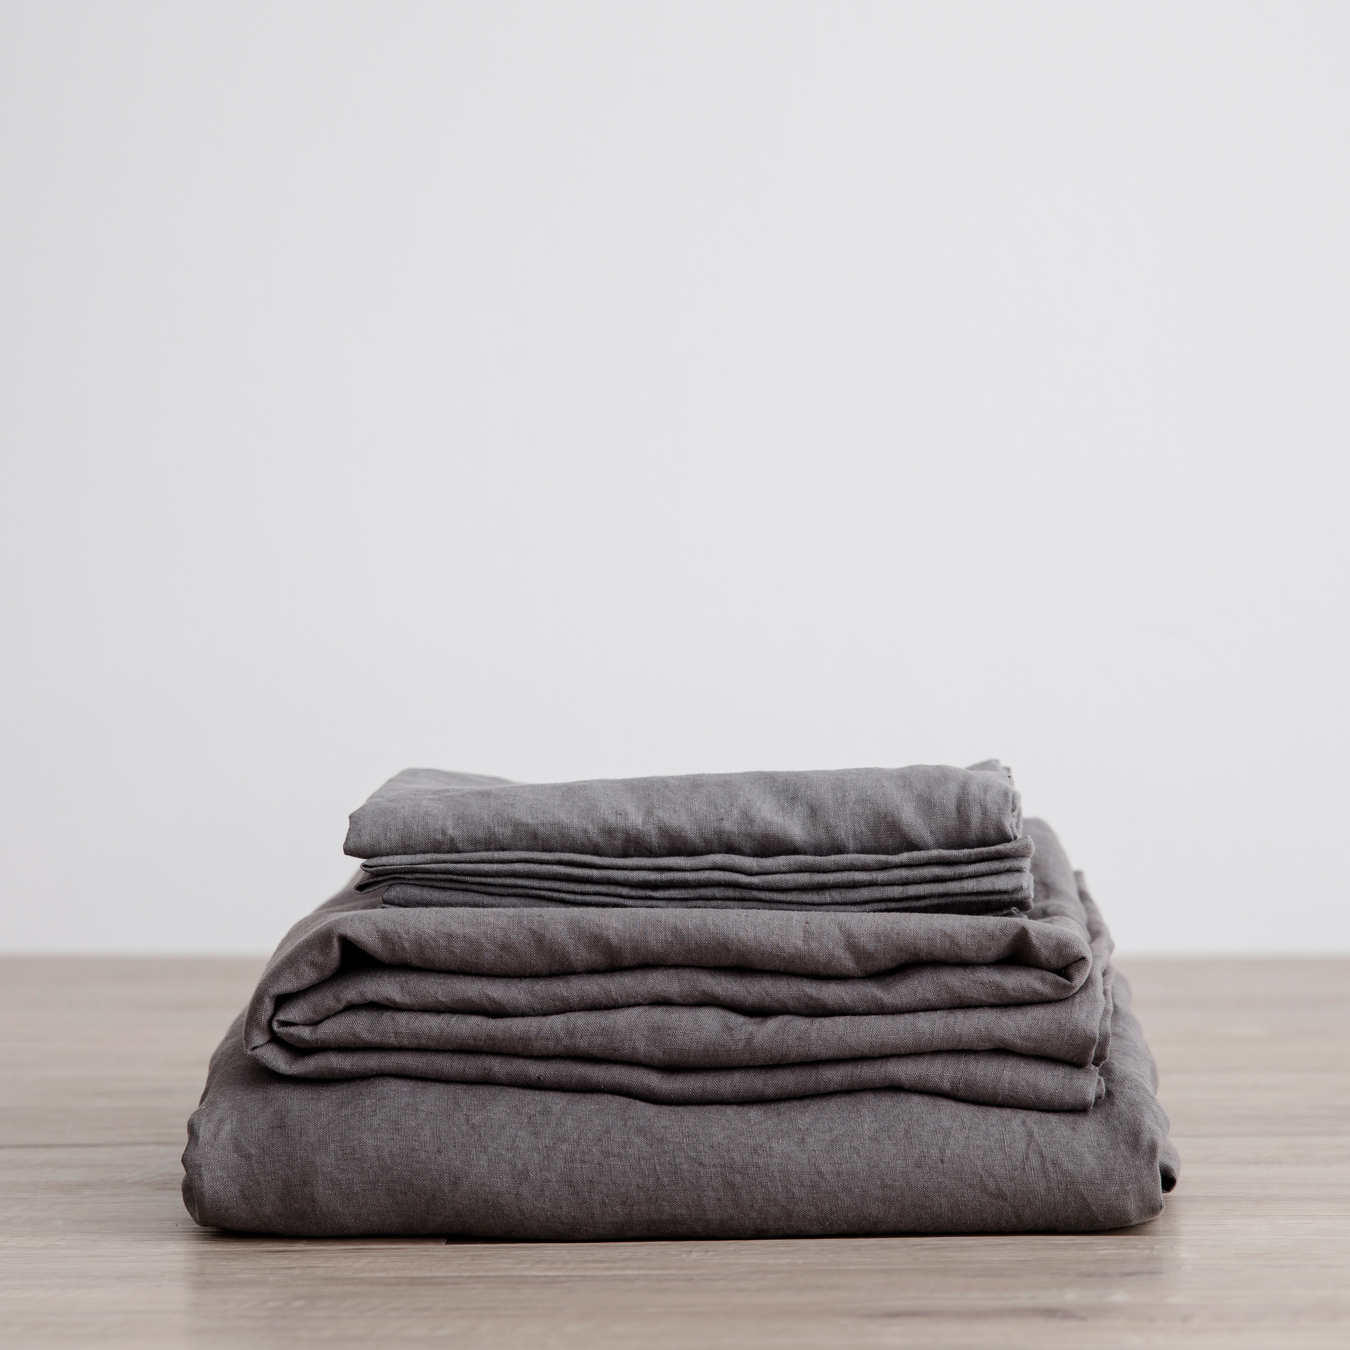 King Linen Sheet Set with Pillowcases Charcoal Grey